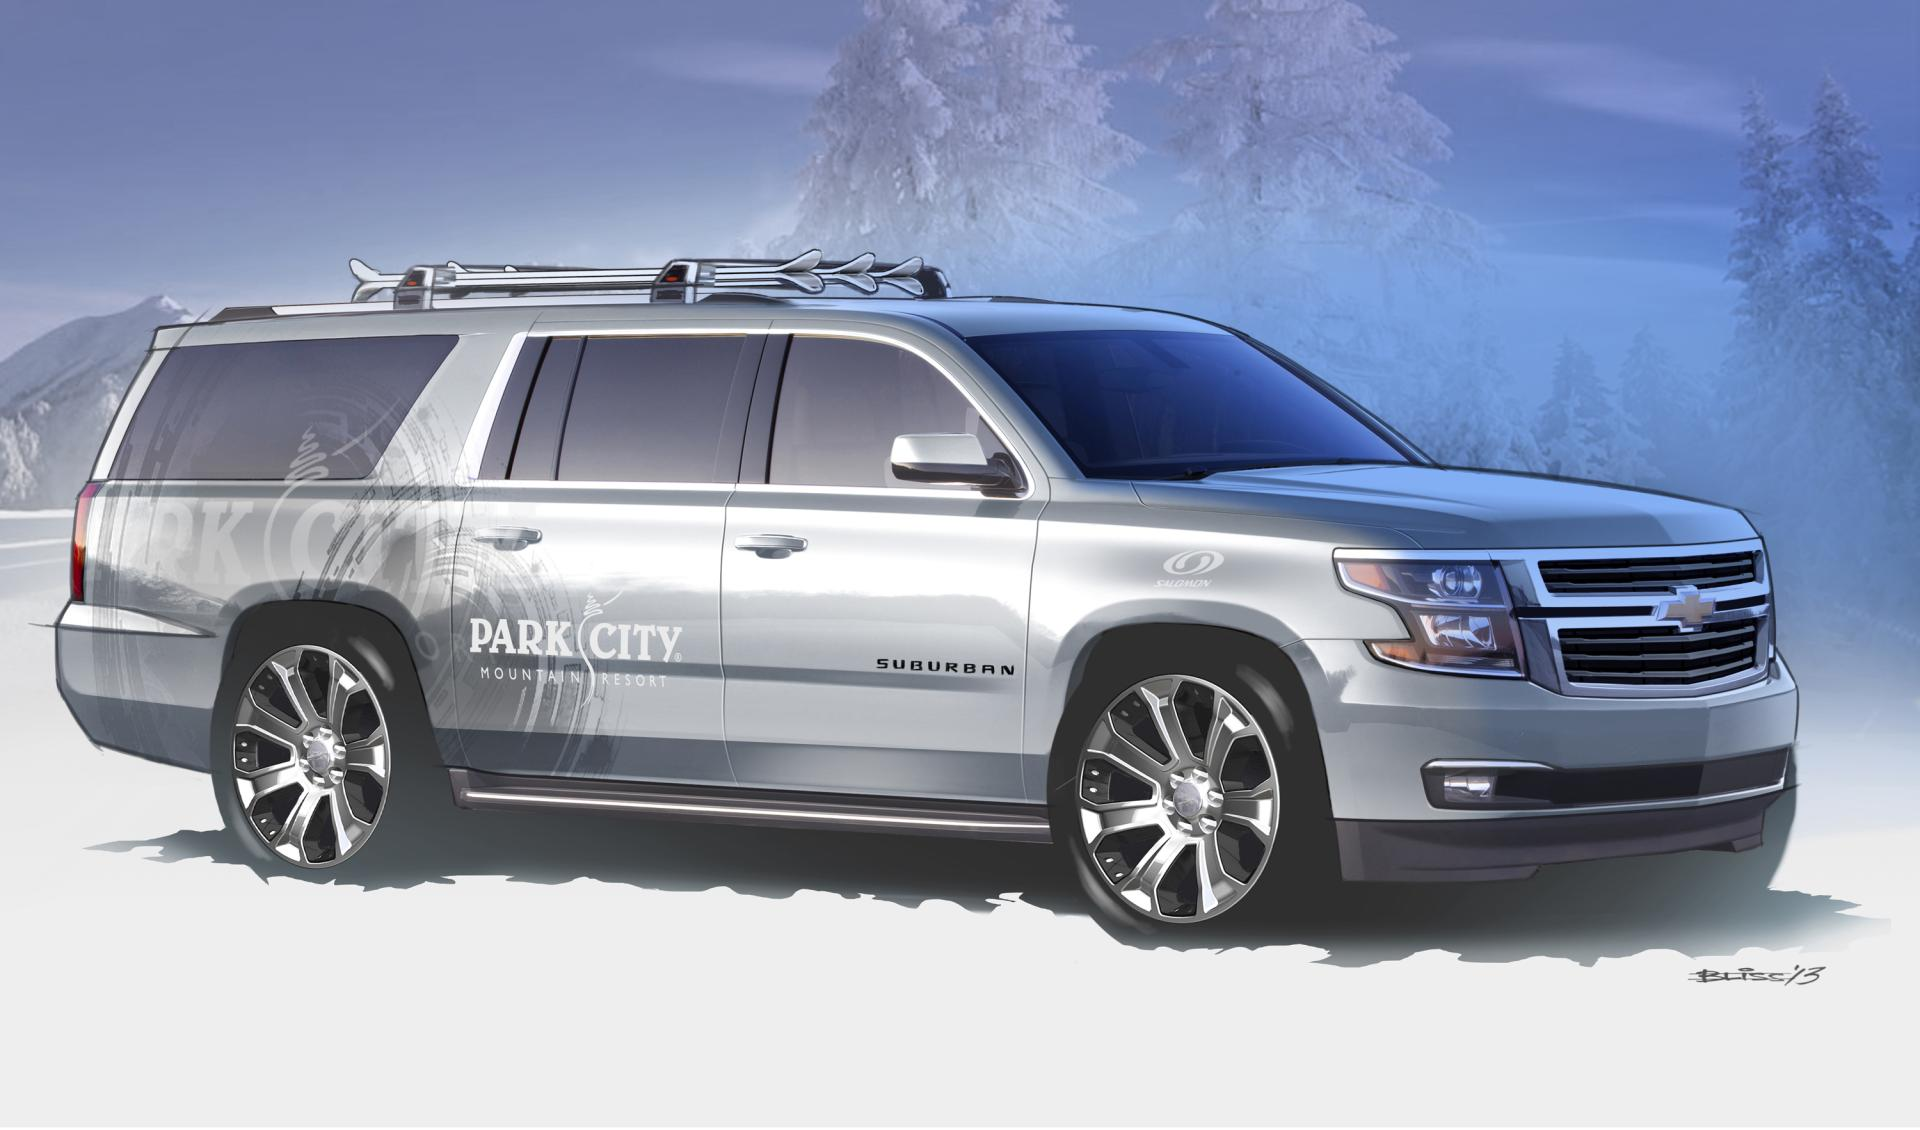 2013 chevrolet suburban half pipe concept news and information. Black Bedroom Furniture Sets. Home Design Ideas